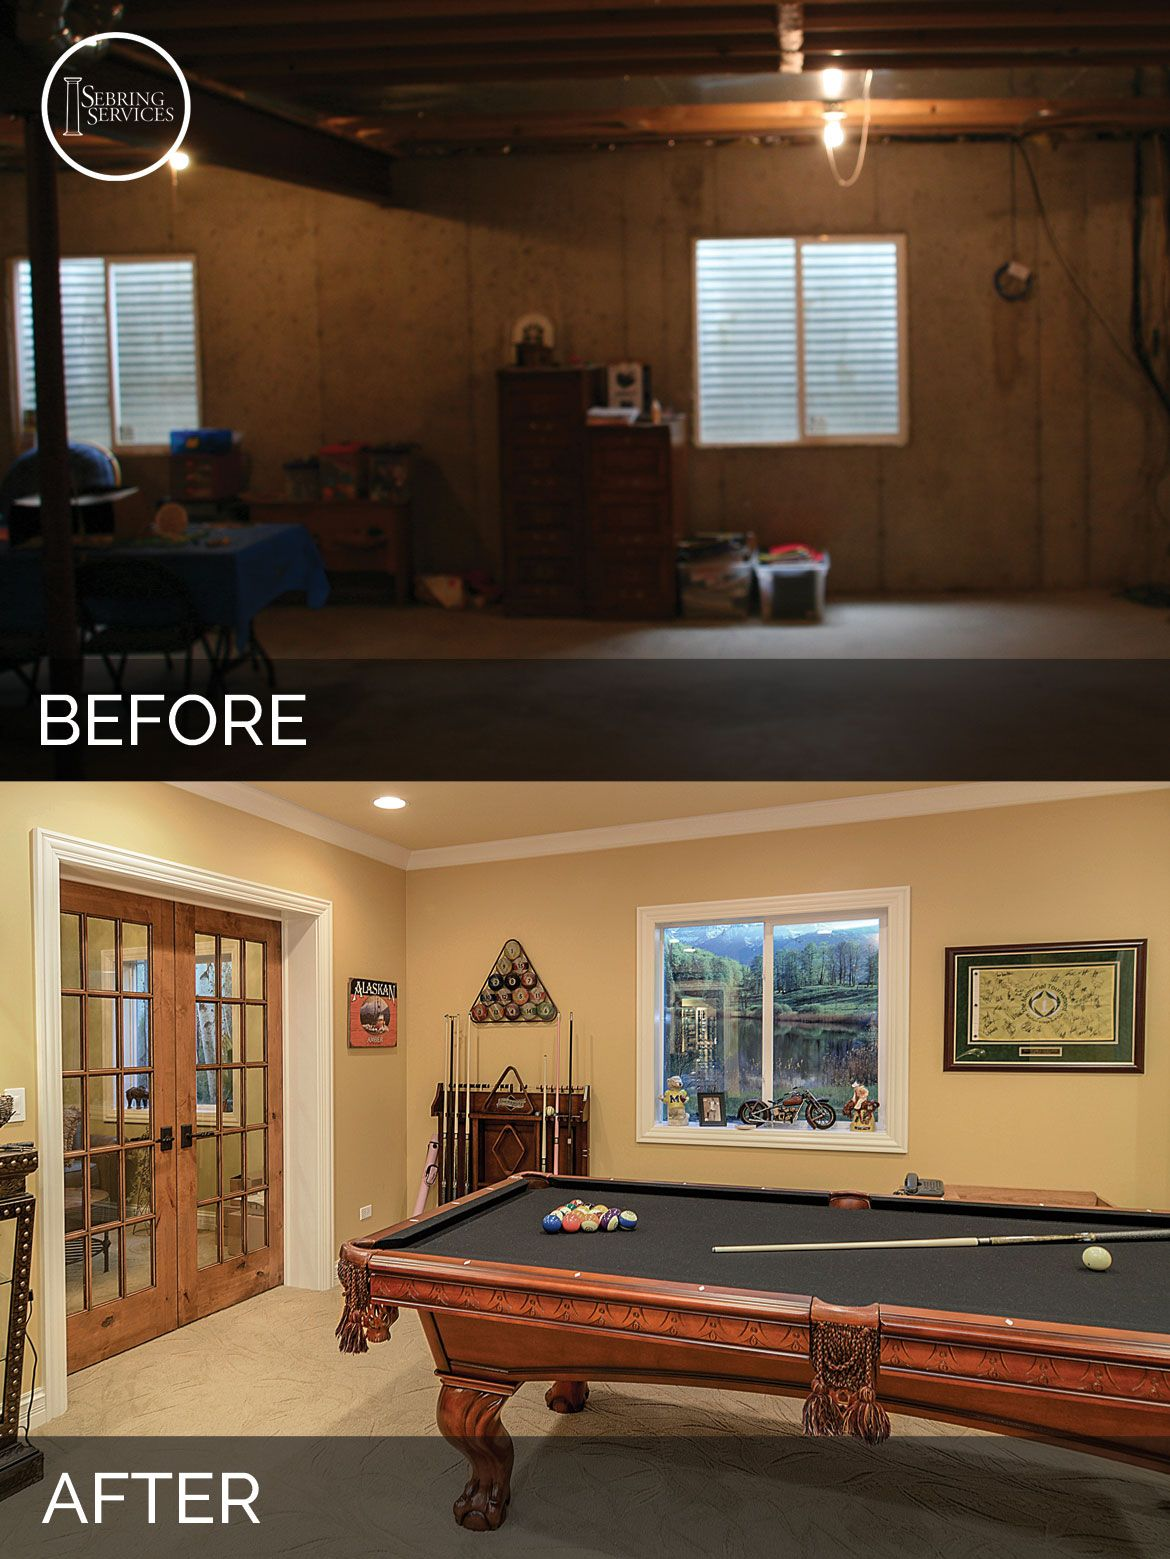 Basement Remodeling Ideas Before And After brian & danica's basement before & after pictures | basements and